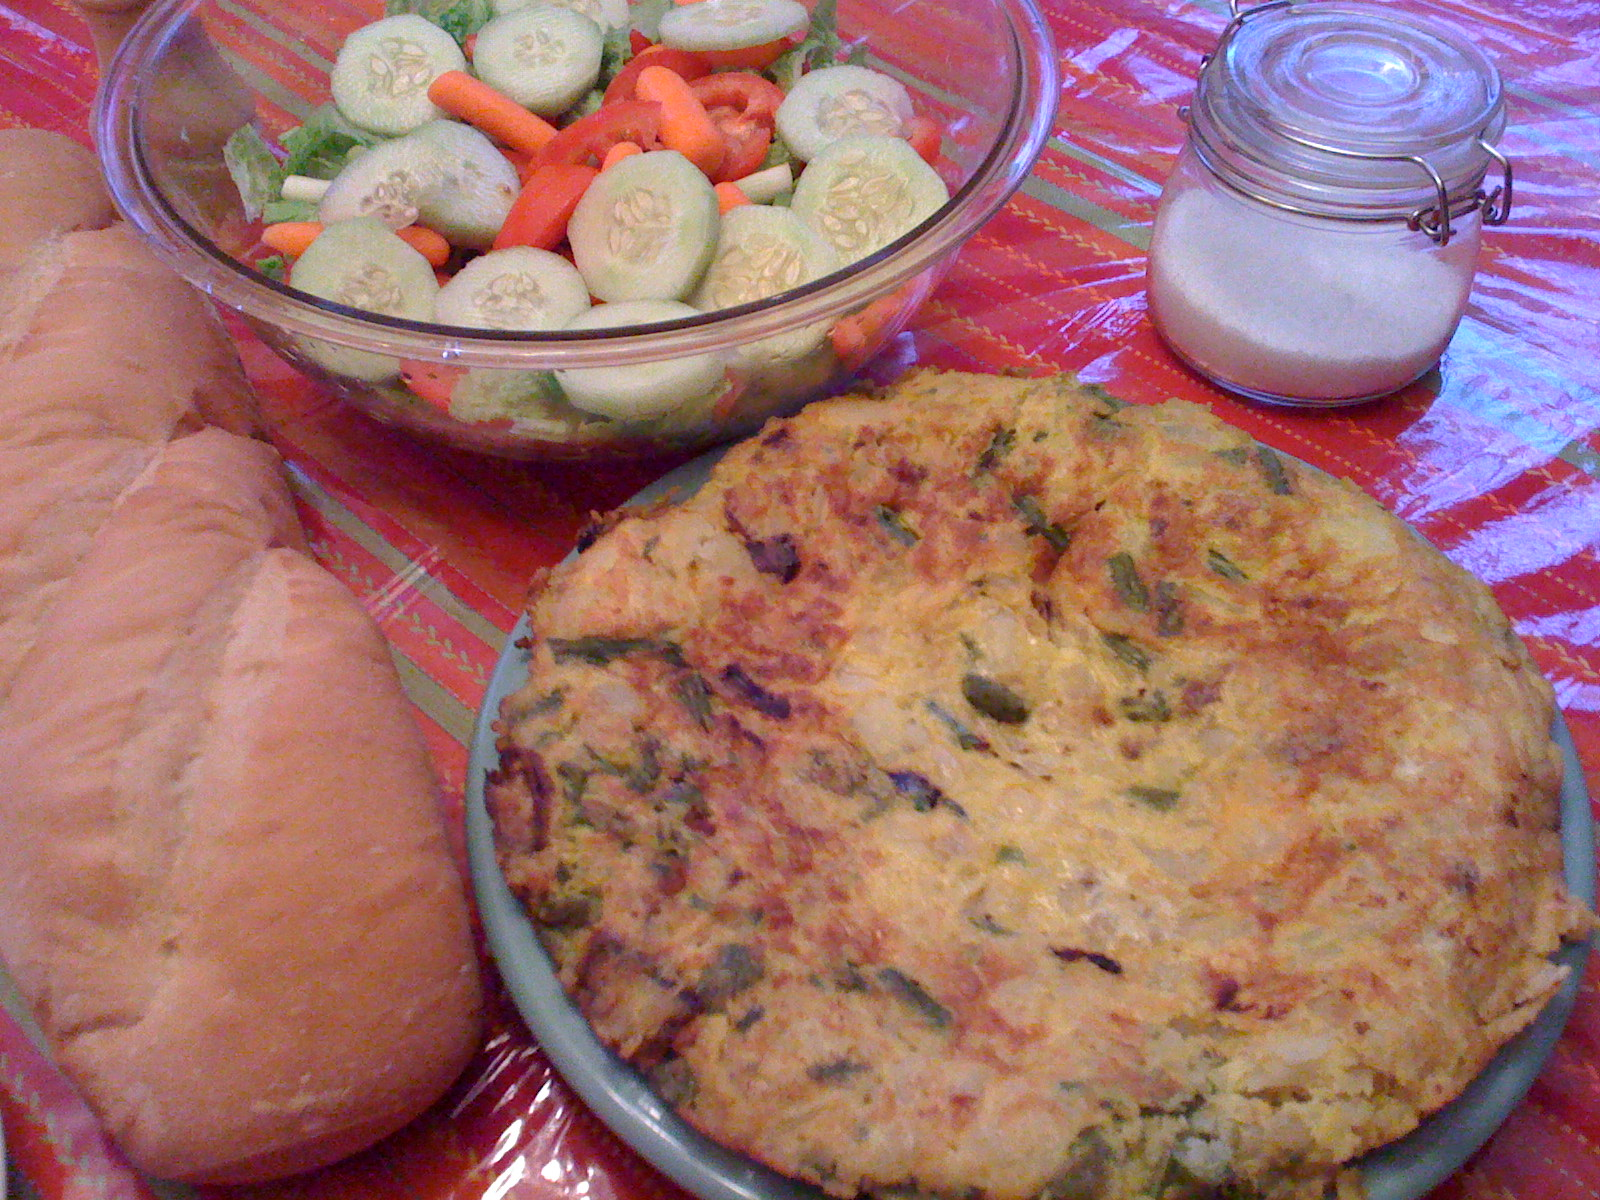 Monday's with Mami - Tortilla Espanola con Esparrago